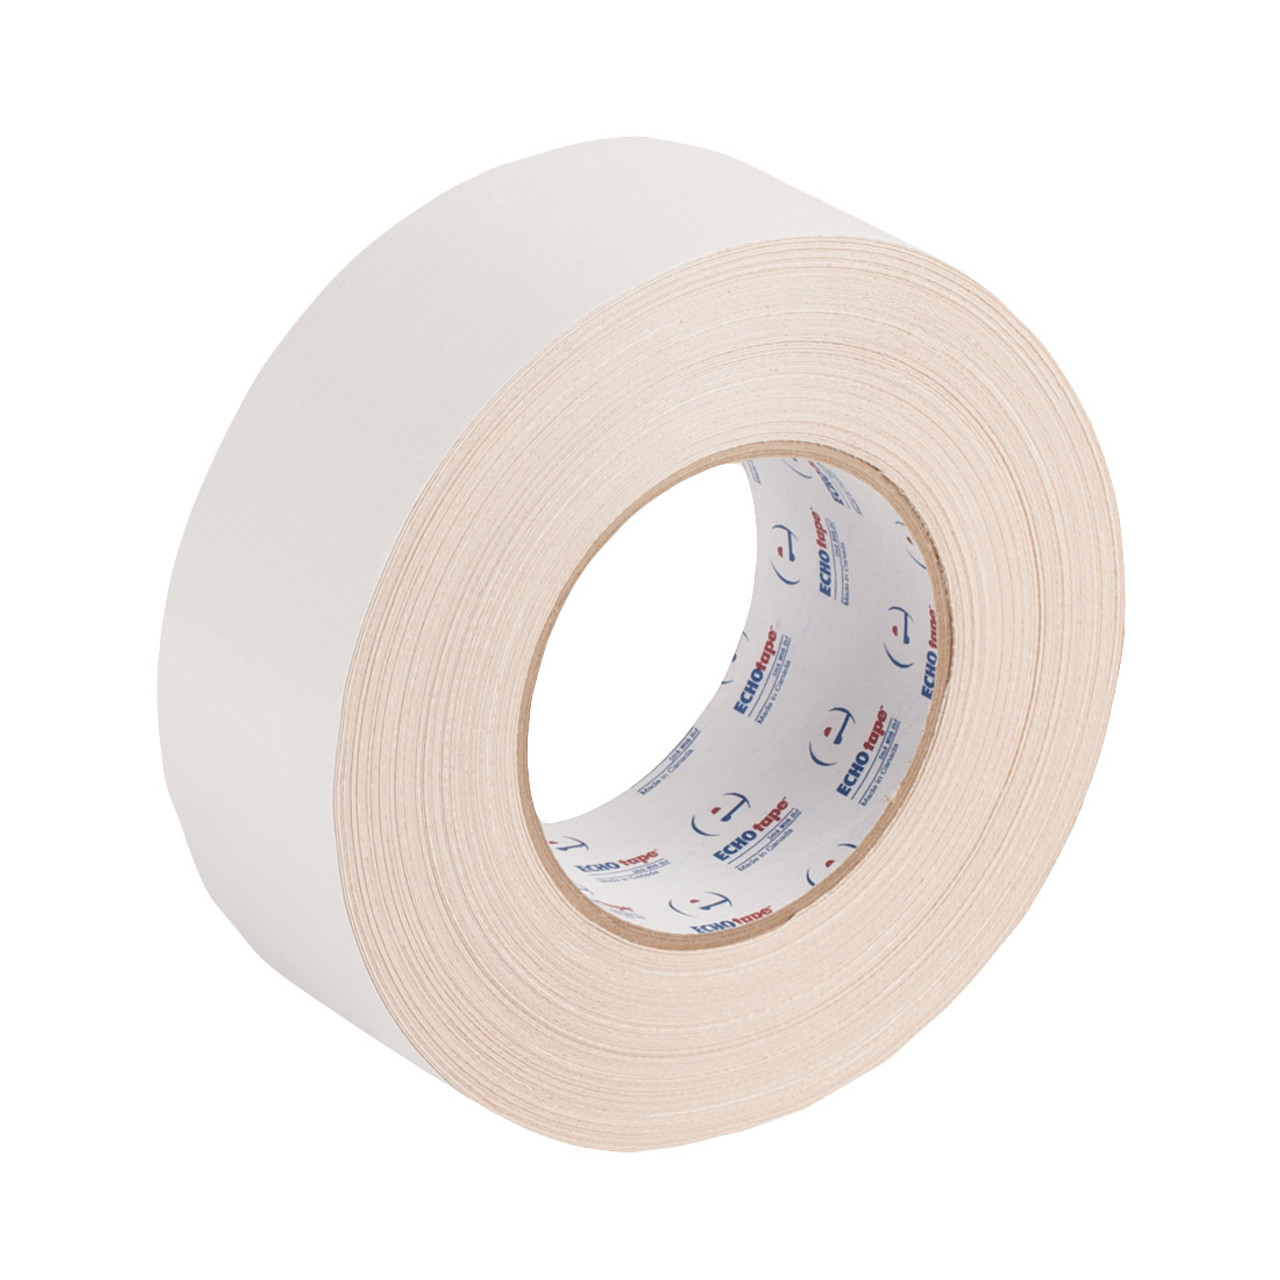 DC W188F Industrial Strength Double Sided Carpet Tape   ECHOtape     DC W188F Industrial Strength Double Sided Carpet Tape   ECHOtape